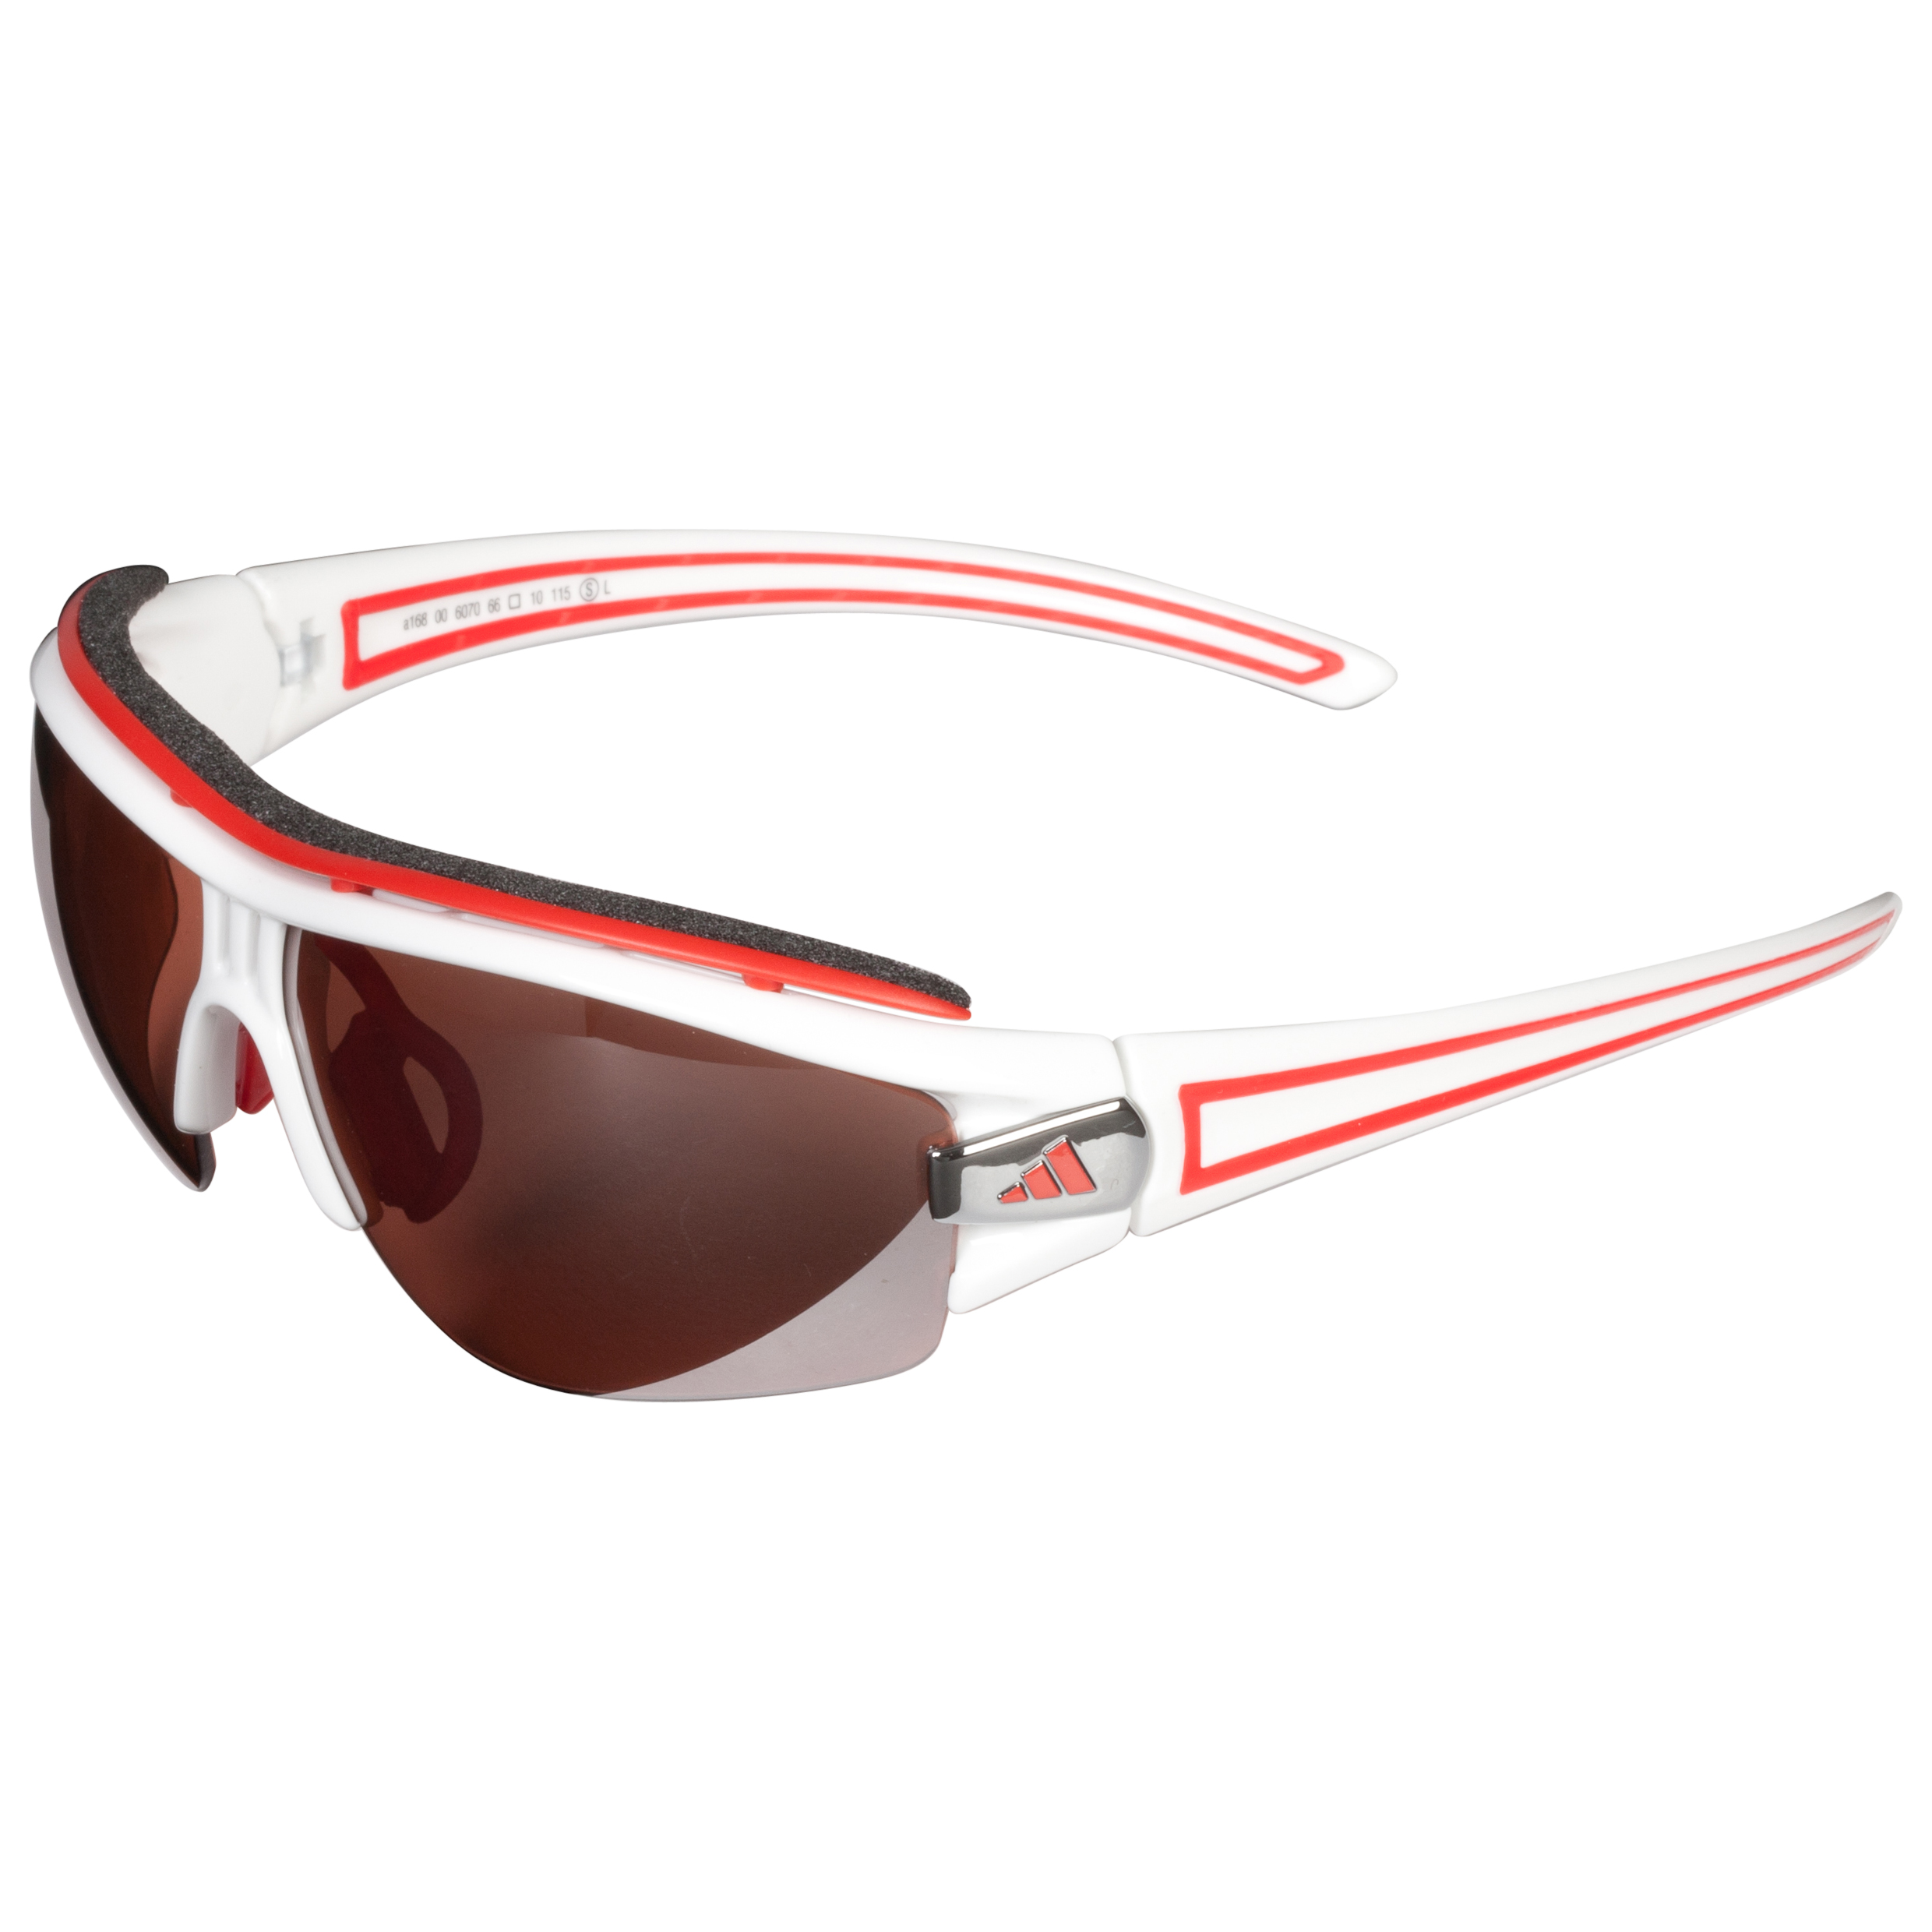 Adidas Evil Eye Halfrim Pro Sunglasses - White/Red - Small